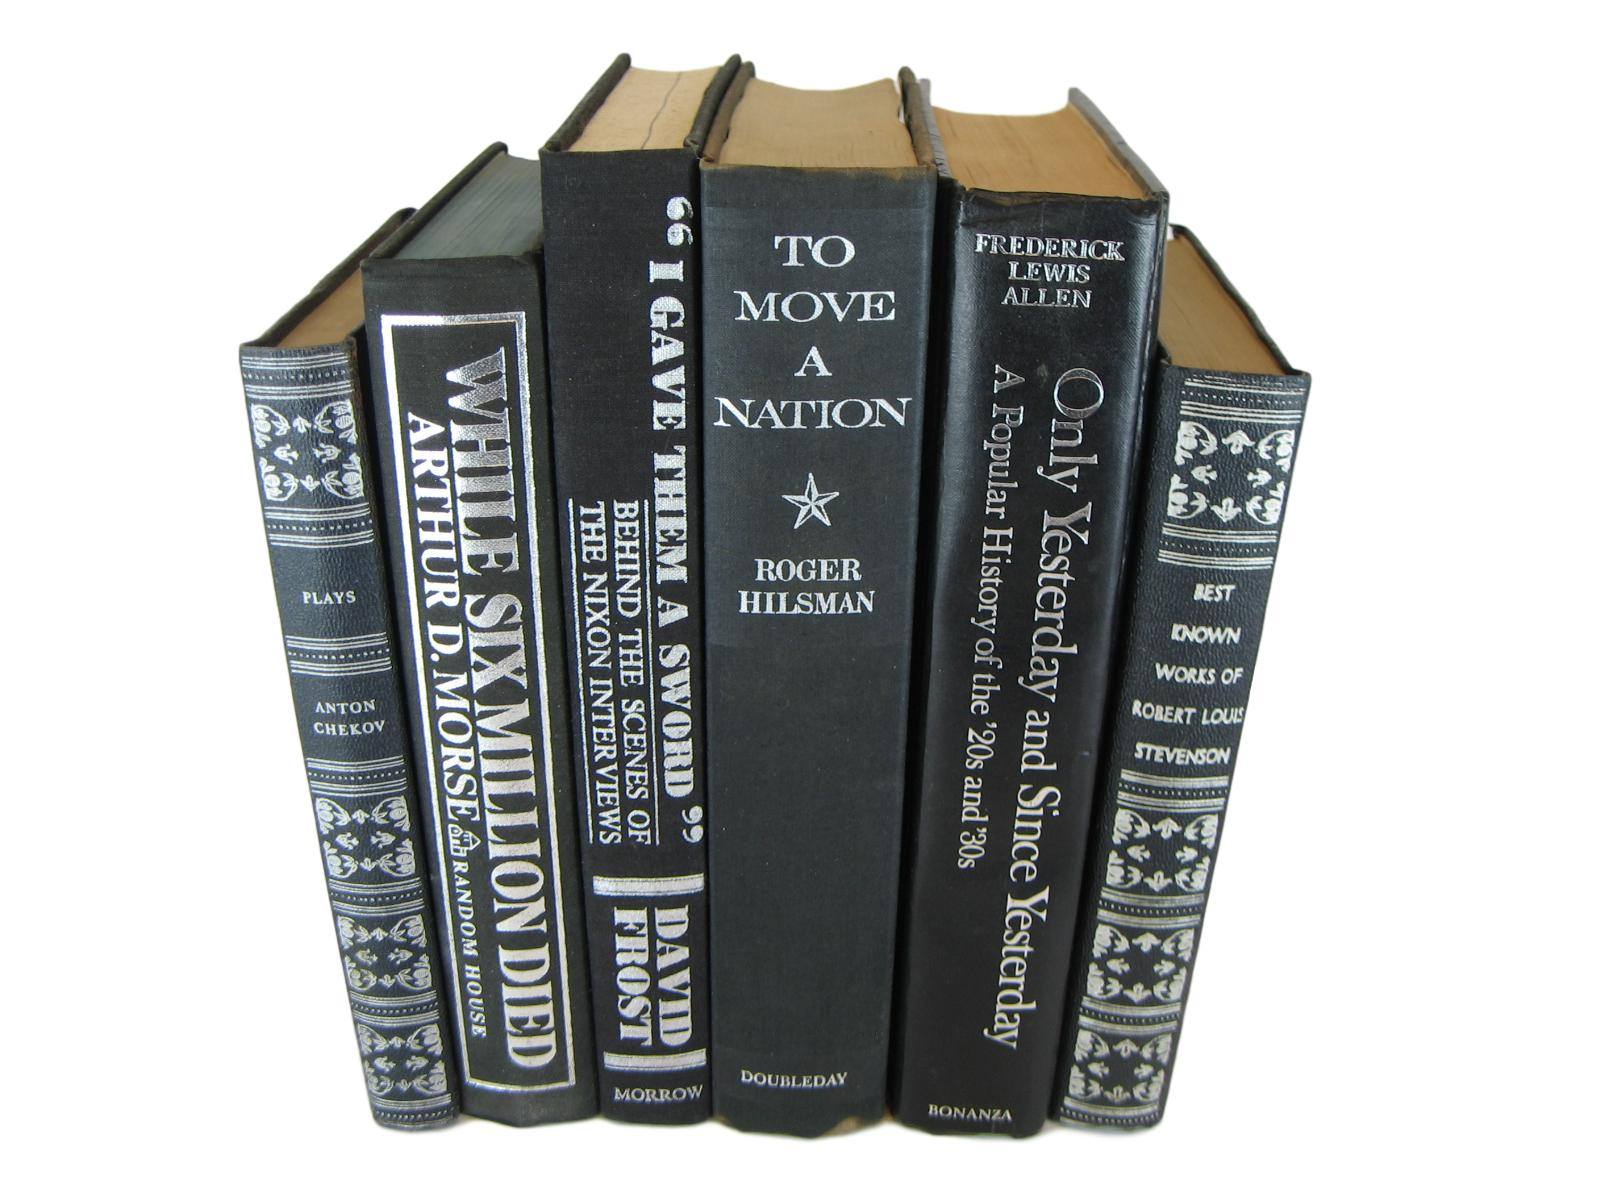 Black Vintage Books for Bookshelf Decor, S/6 - Decades of Vintage